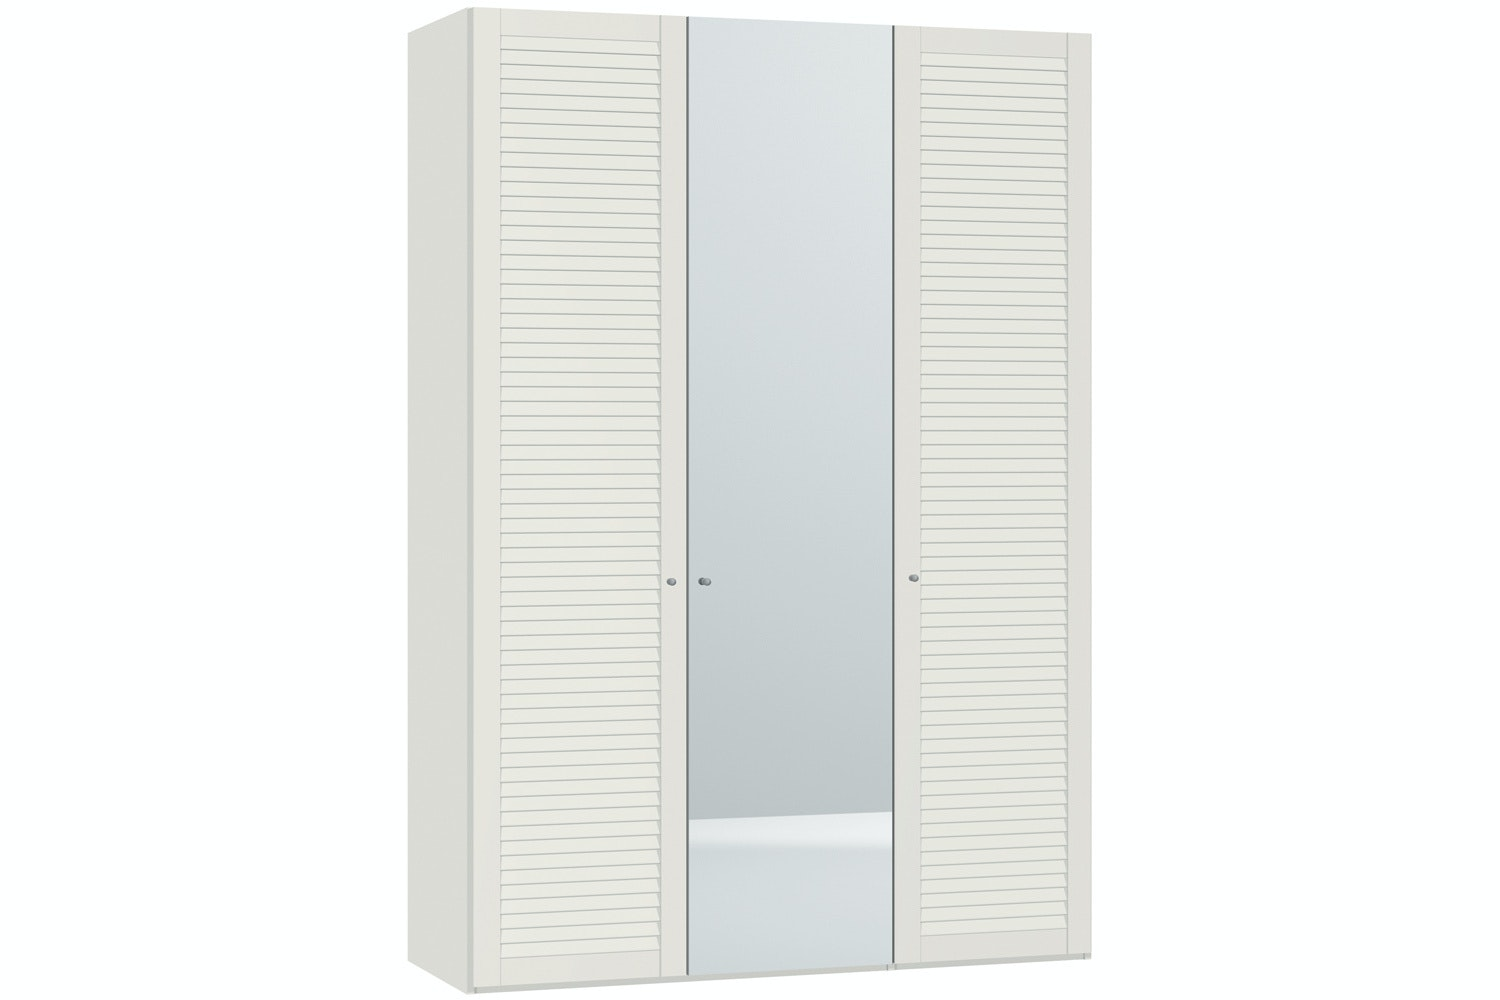 Sarah Hinged 3 Door Wardrobe 152Cm | Lamella + Mirror